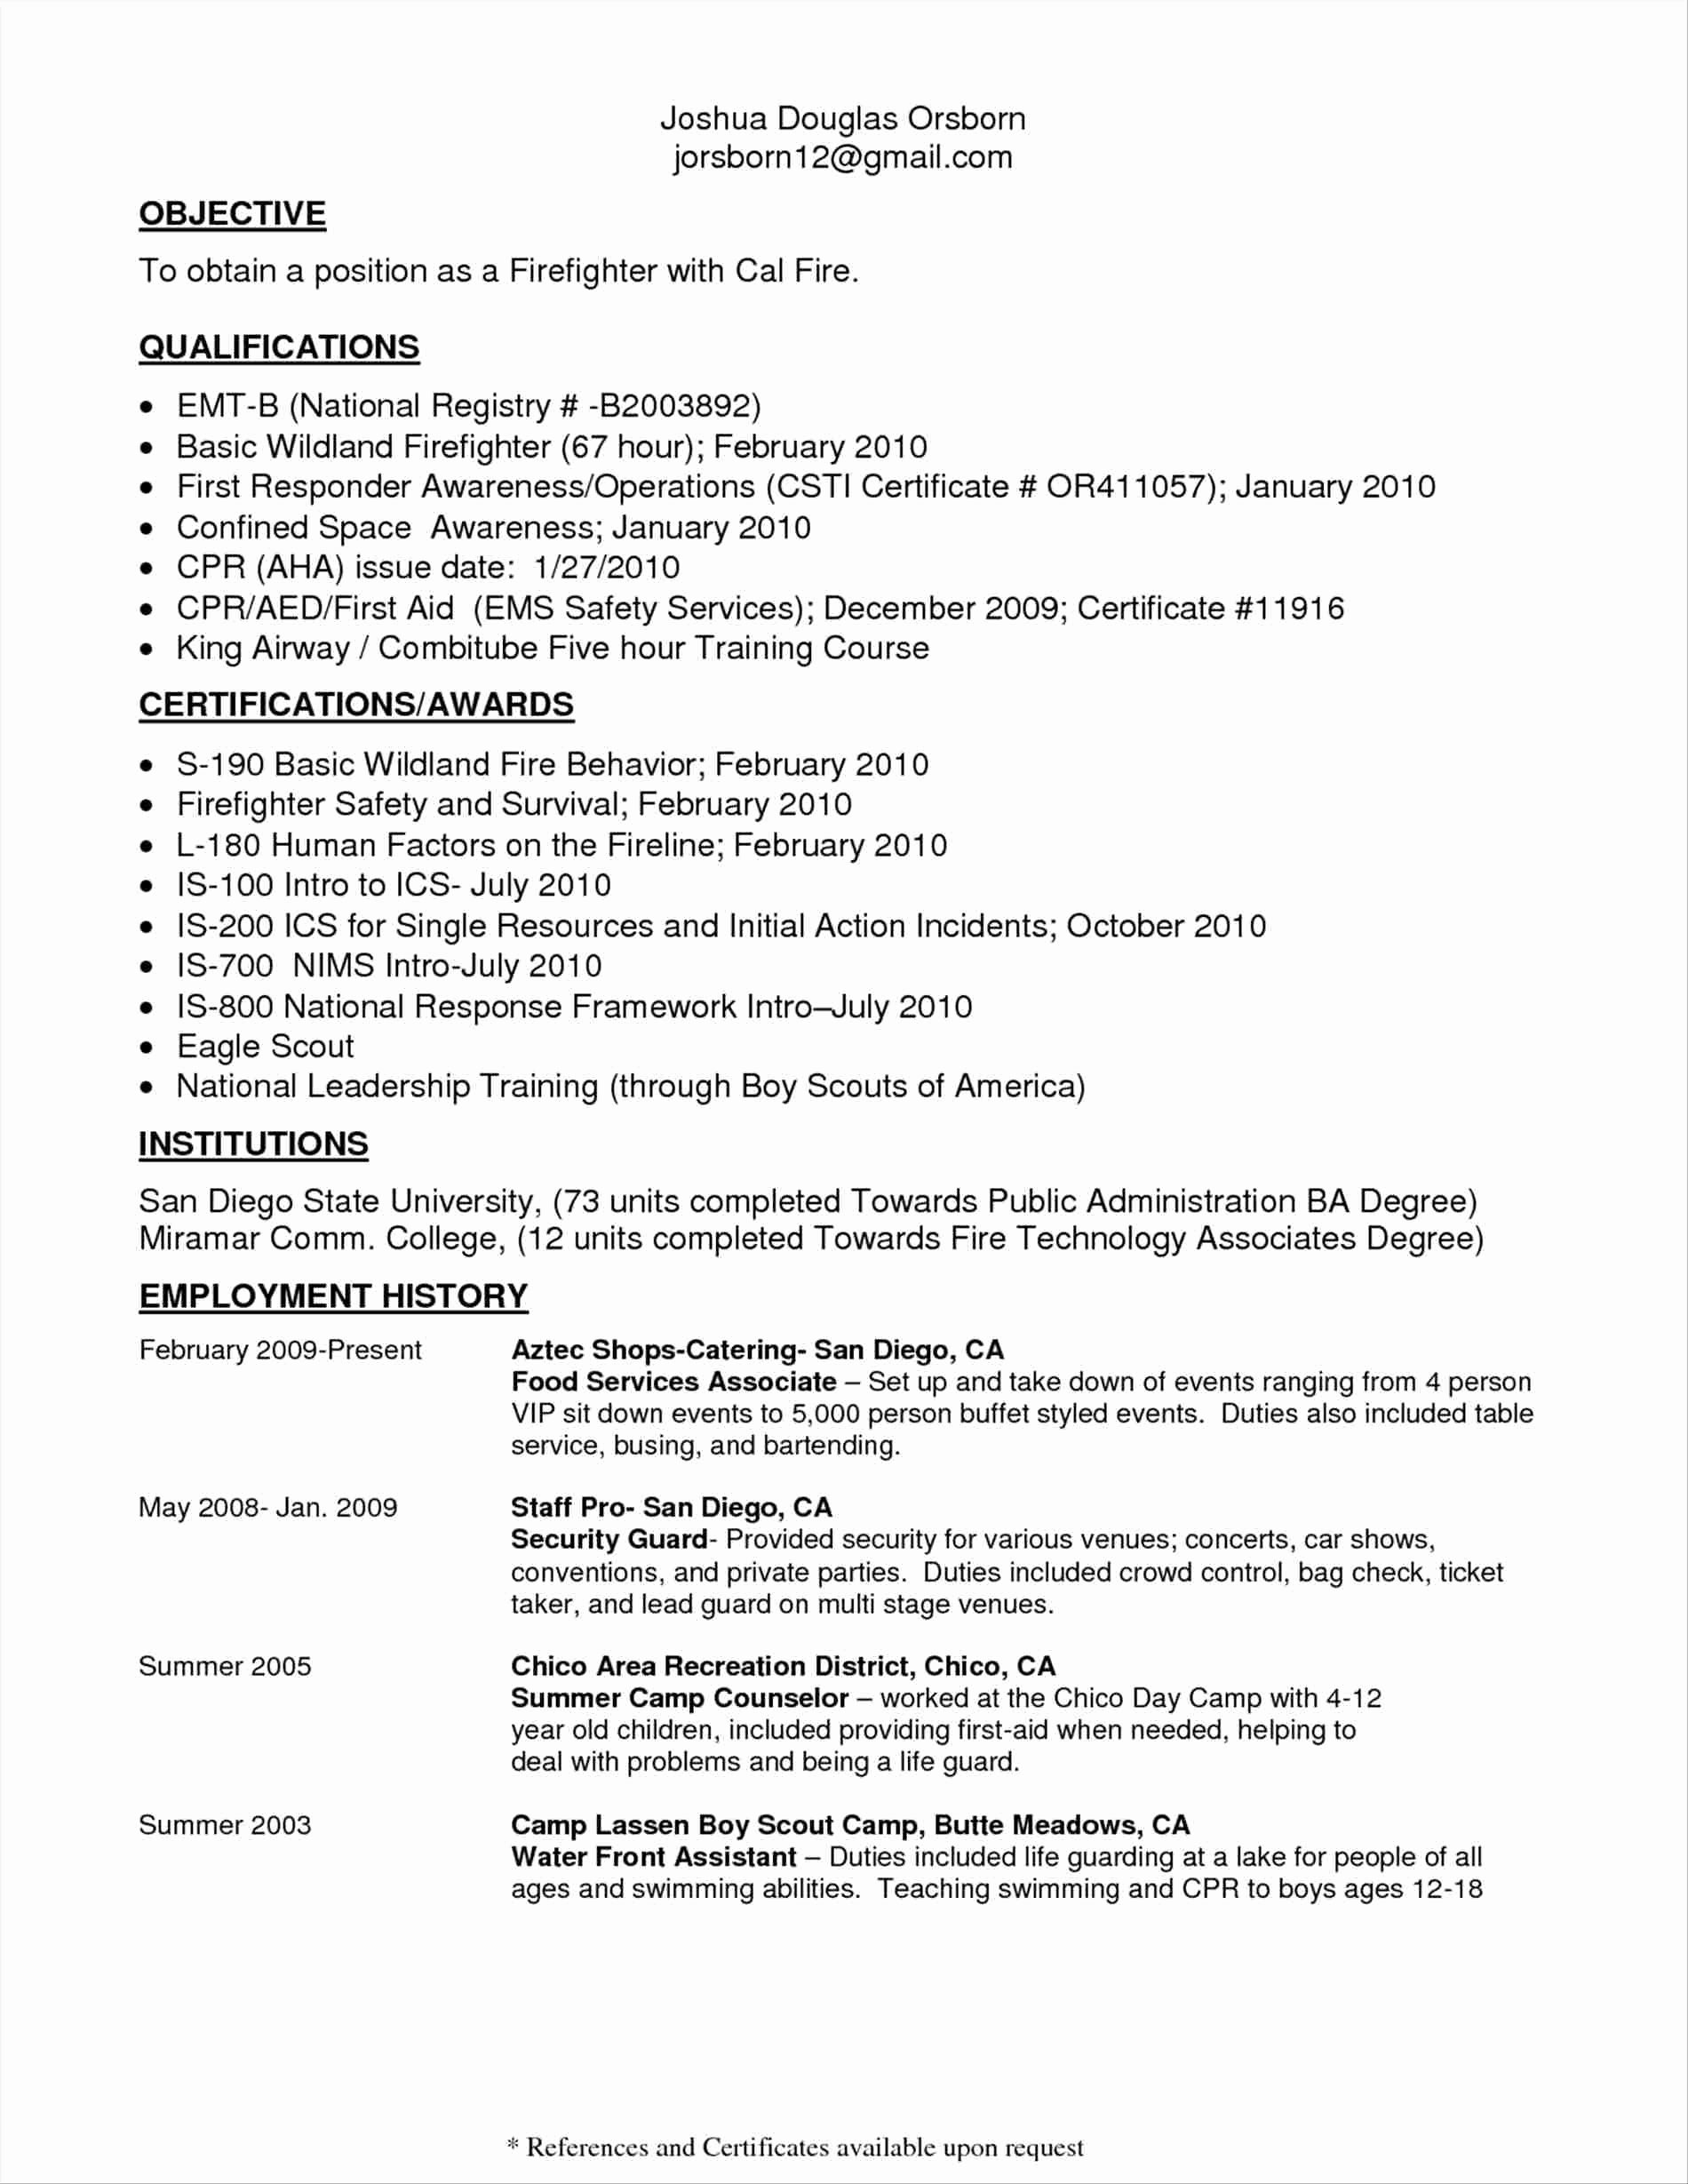 Firefighter Letter Of Recommendation Fresh 12 13 Firefighter Cover Letter Samples